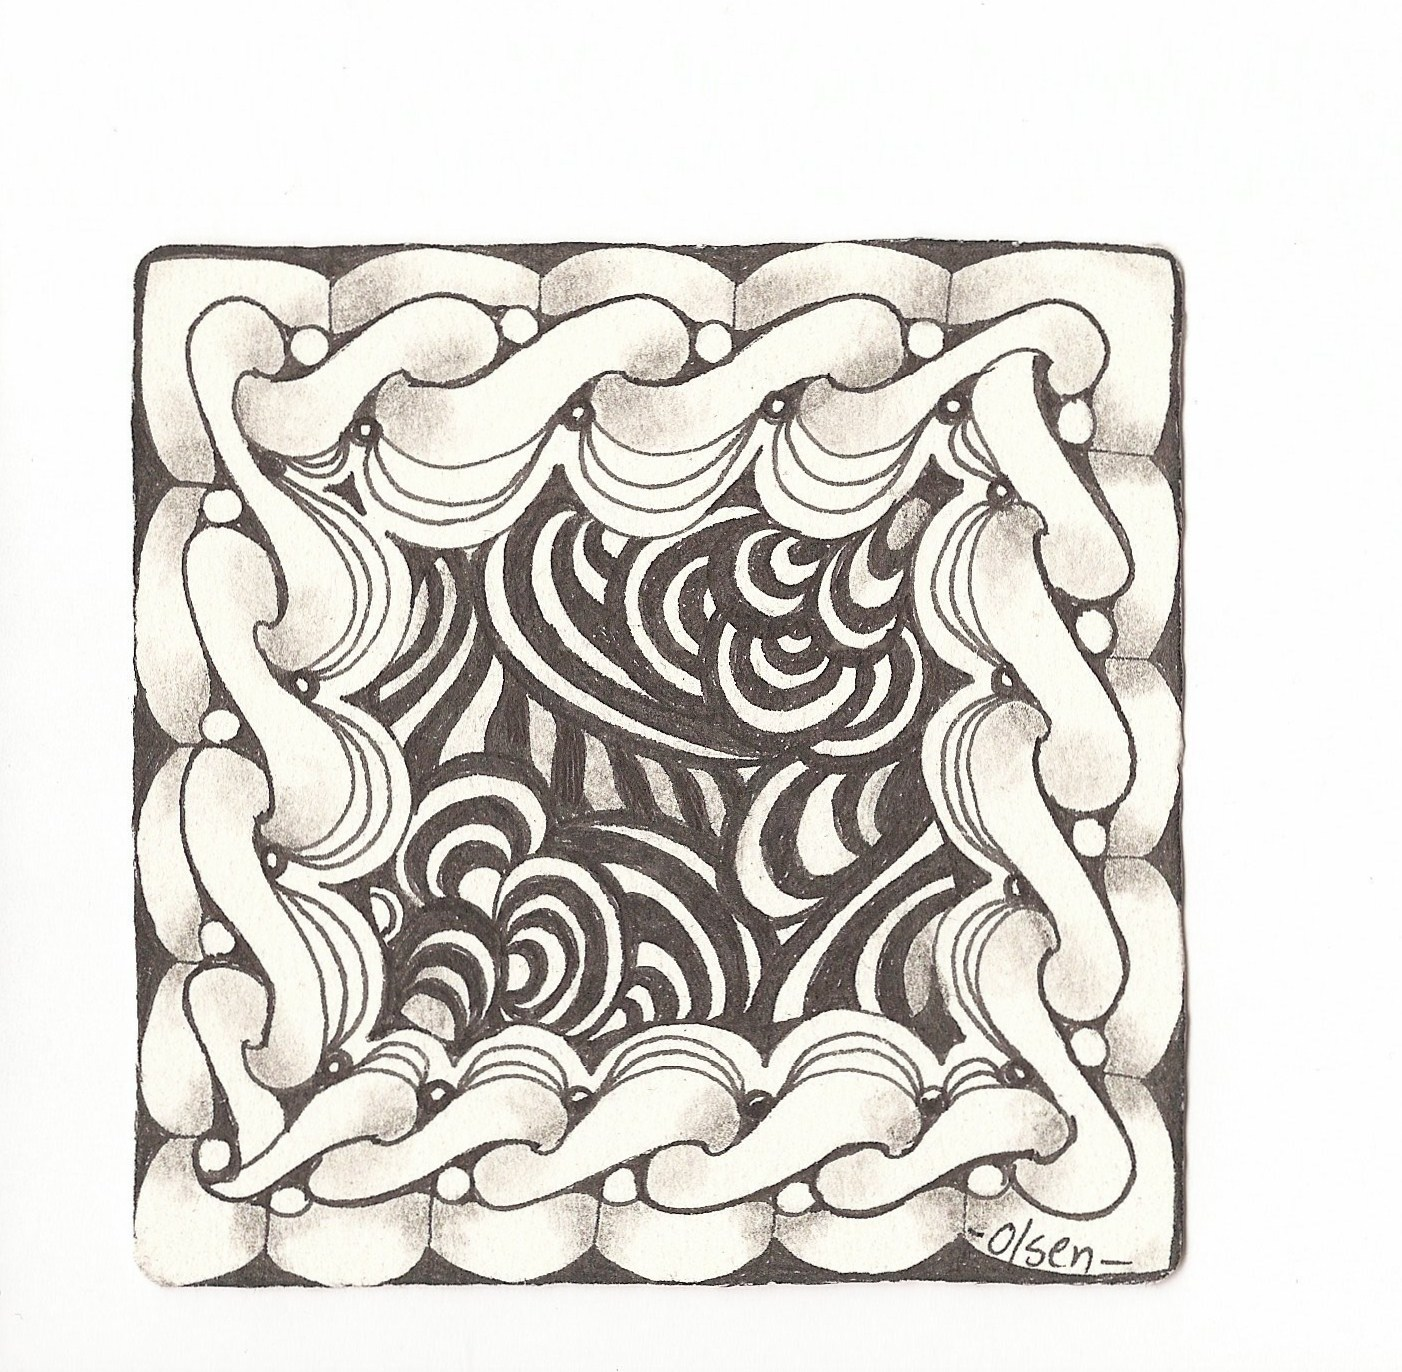 The book of zentangle roberts and thomas